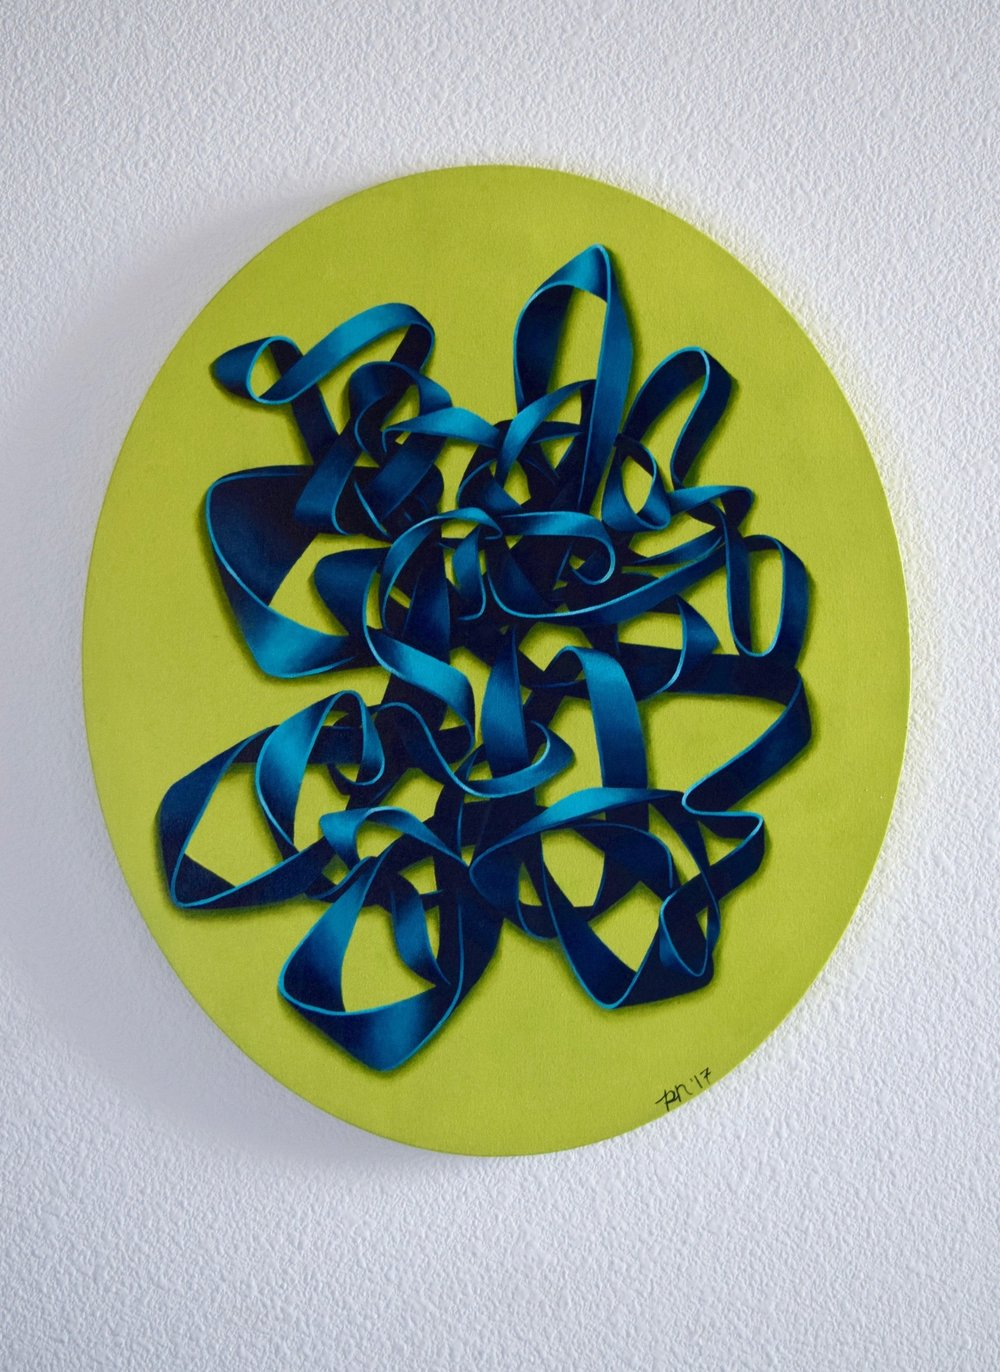 TEAL KNOT ON GREEN  | ACRYLIC ON CANVAS  |   2017  |  FOR SALE - PLEASE CONTACT FOR INFORMATION